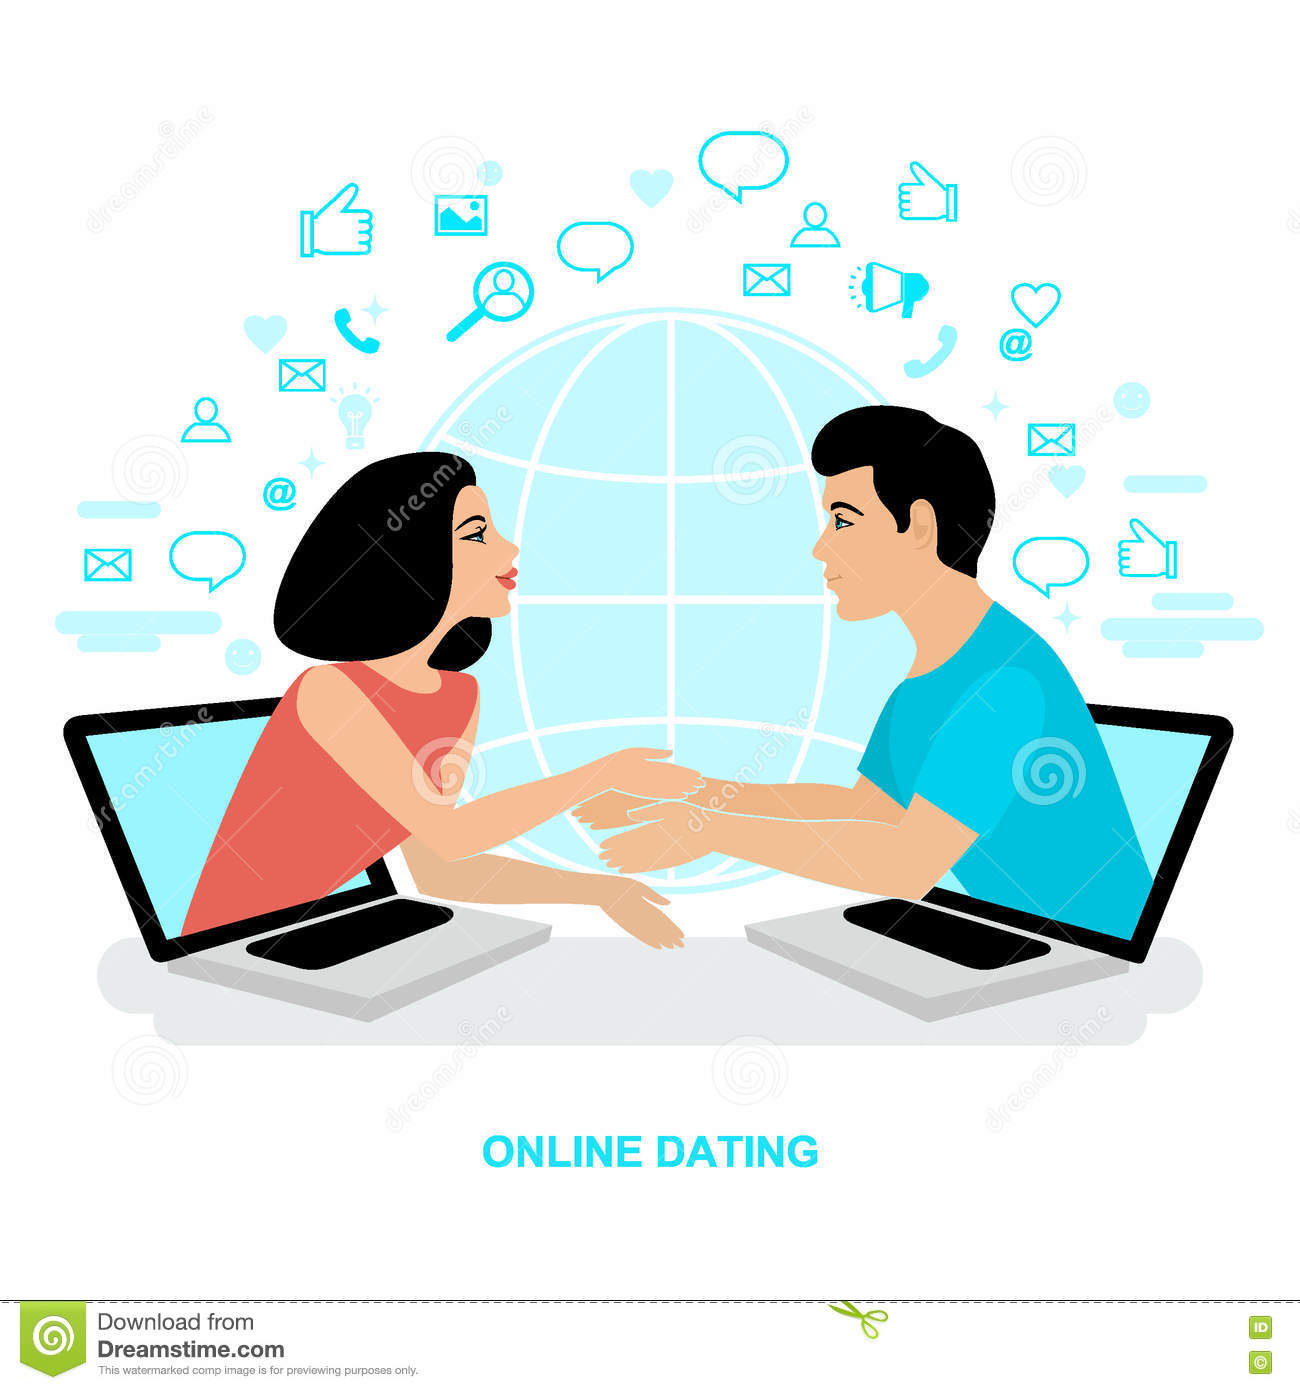 edinburg online hookup & dating Hookup id is an online verification system required by almost all online hookup dating sites nowadays to ensure the safety of their members,.